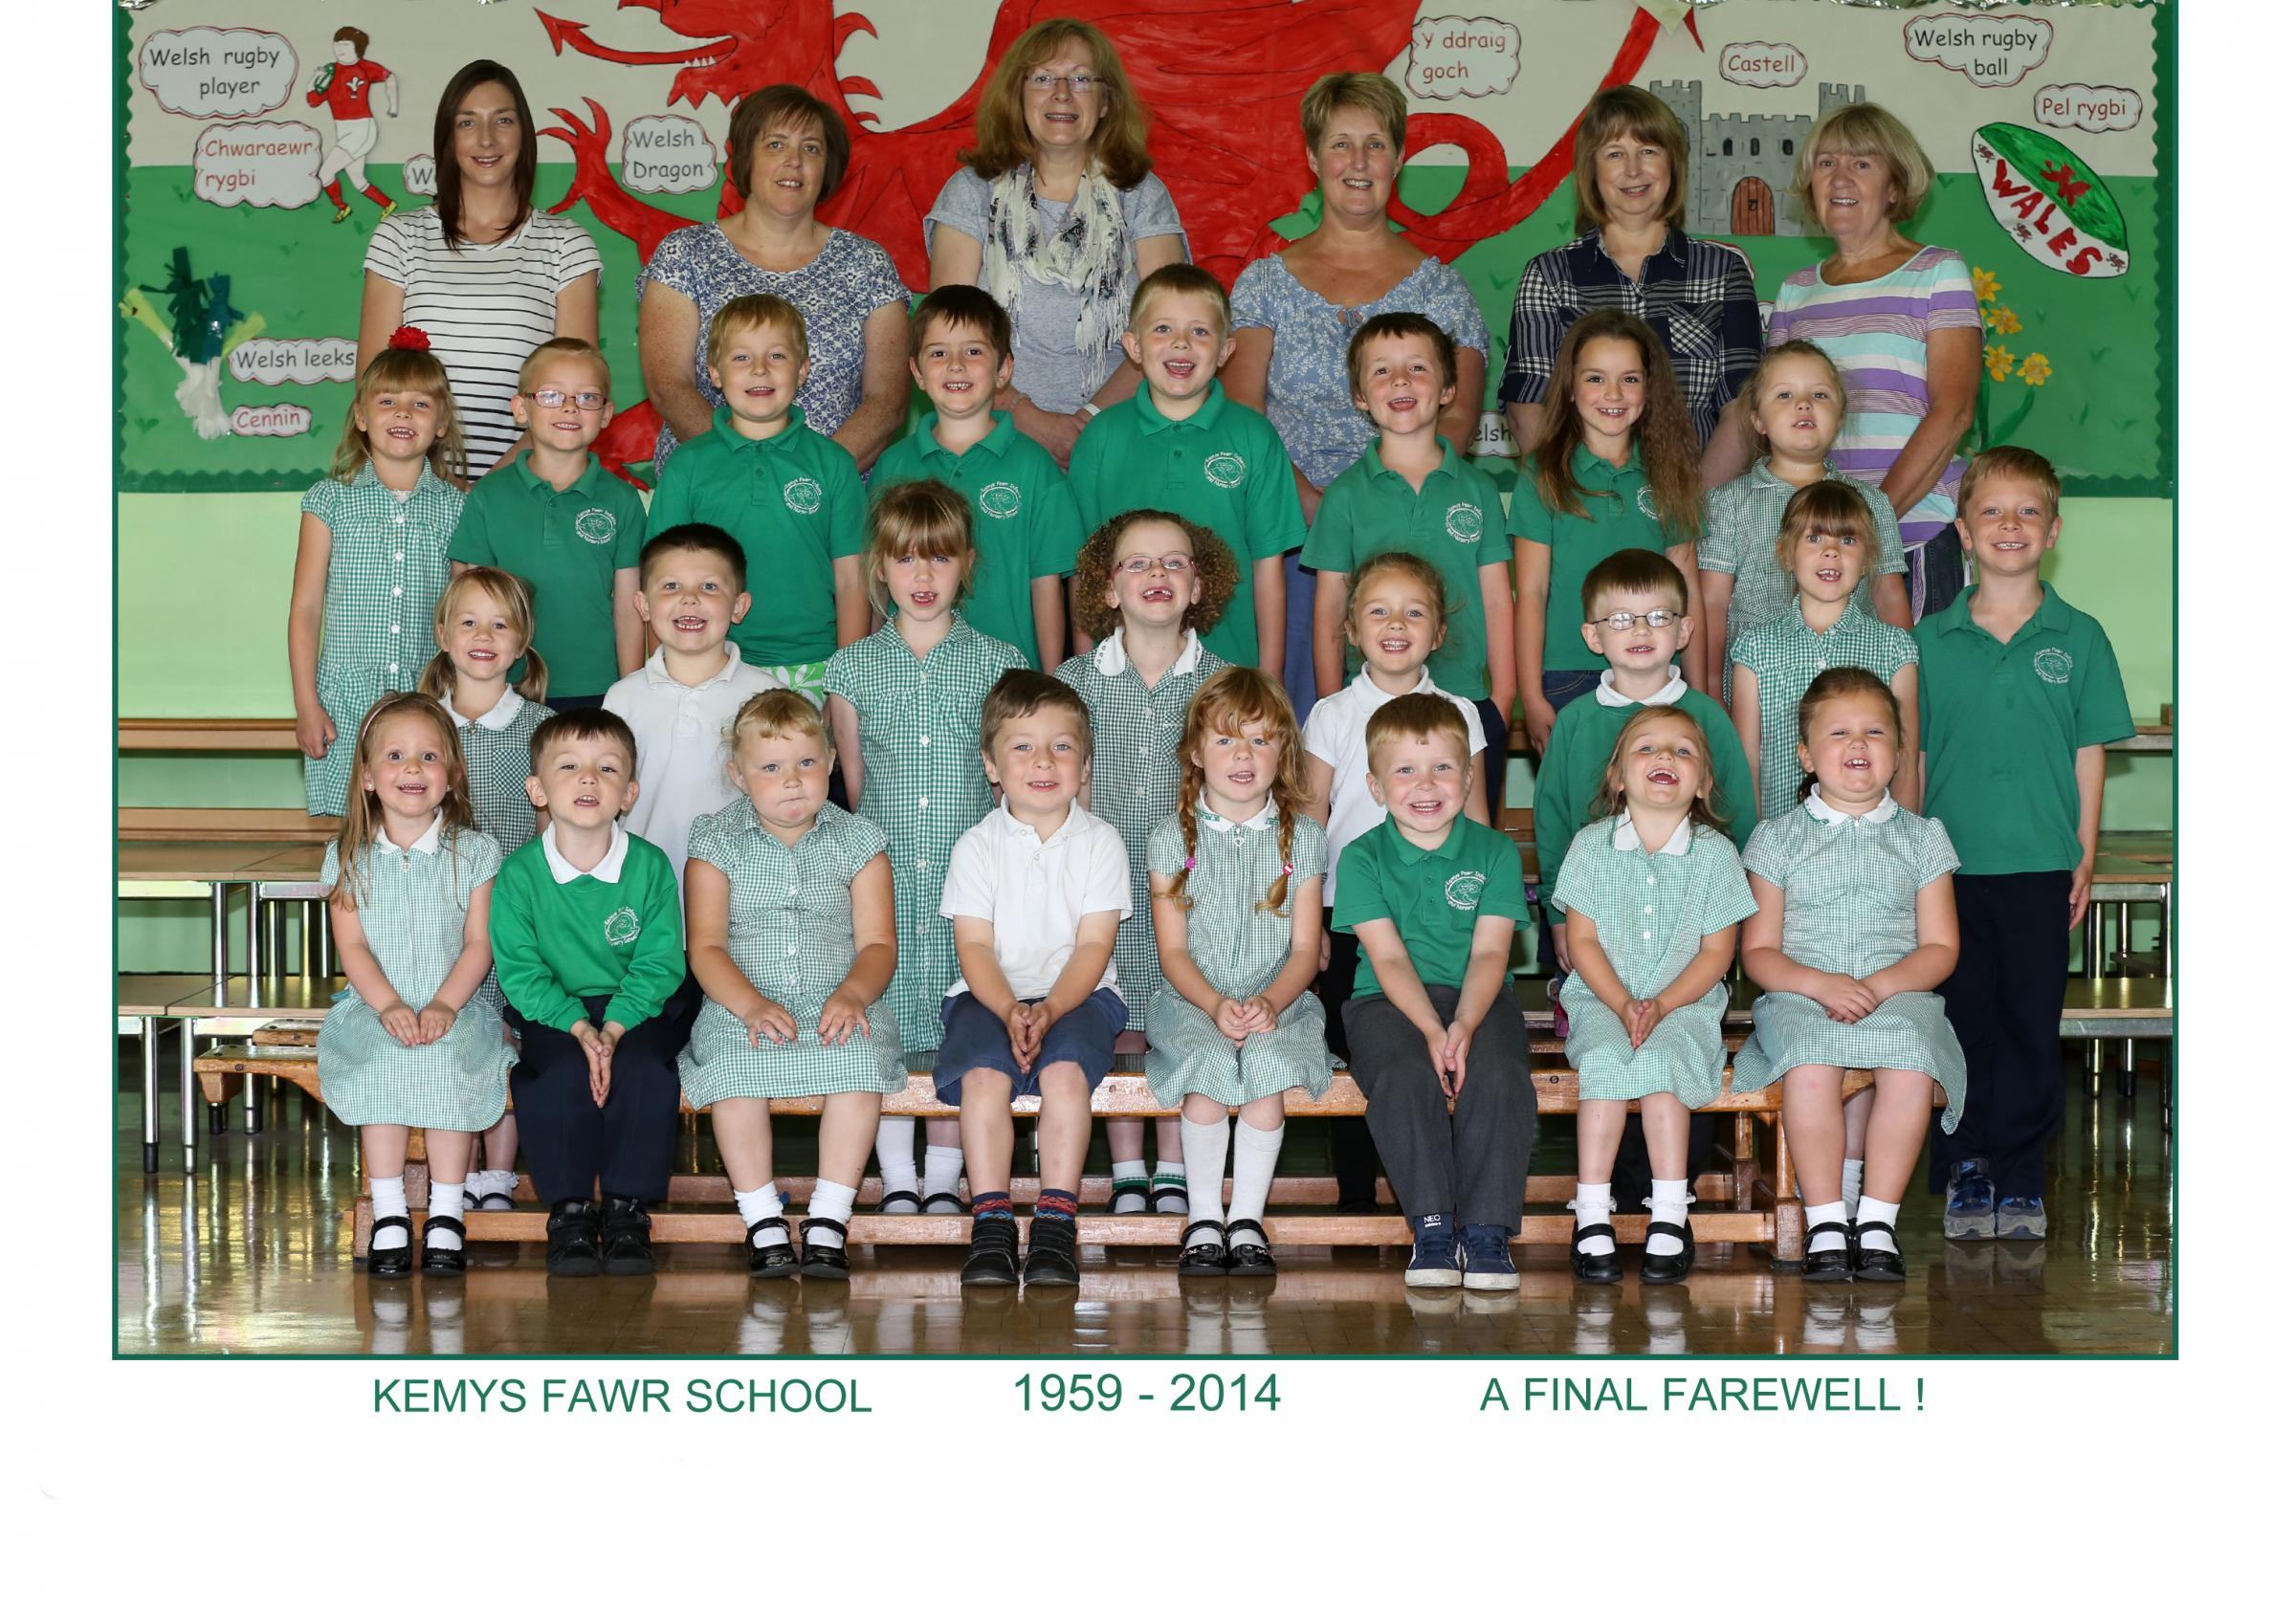 FINAL FAIRWELL: Pupils' keepsake photograph taken by Nigel Bloomer.